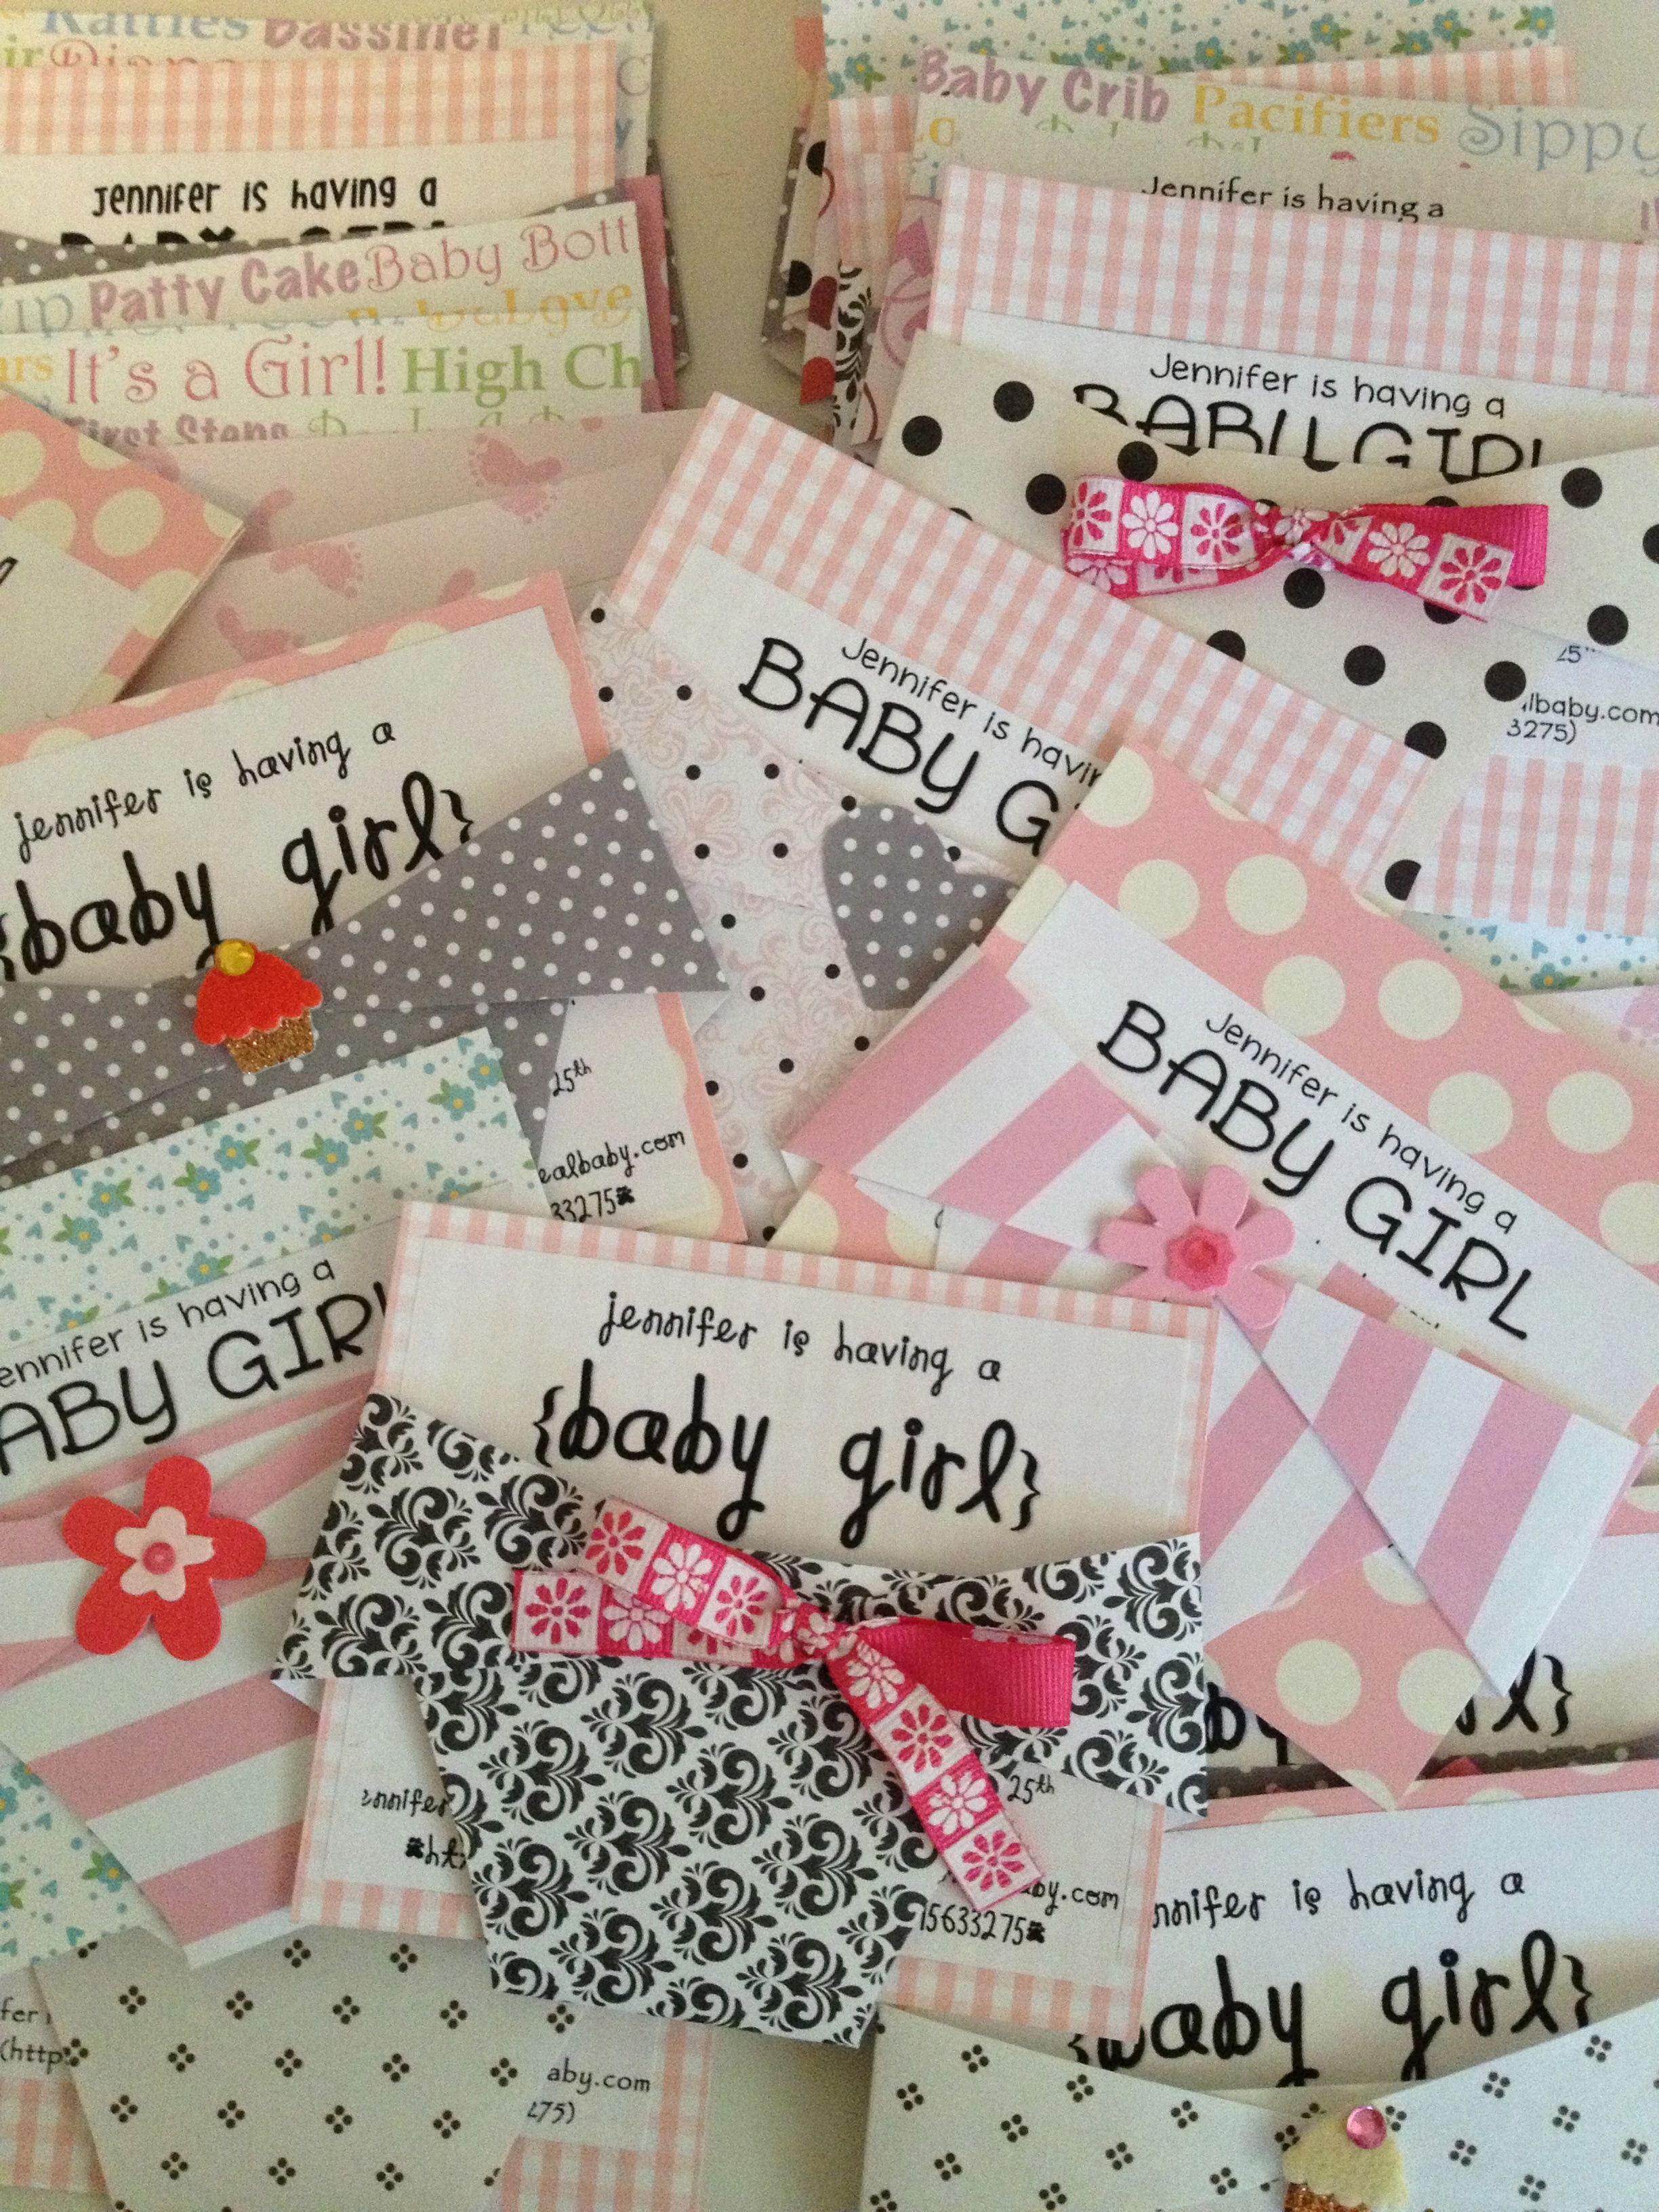 Baby Shower Invites | Diy baby, Babies and Babyshower